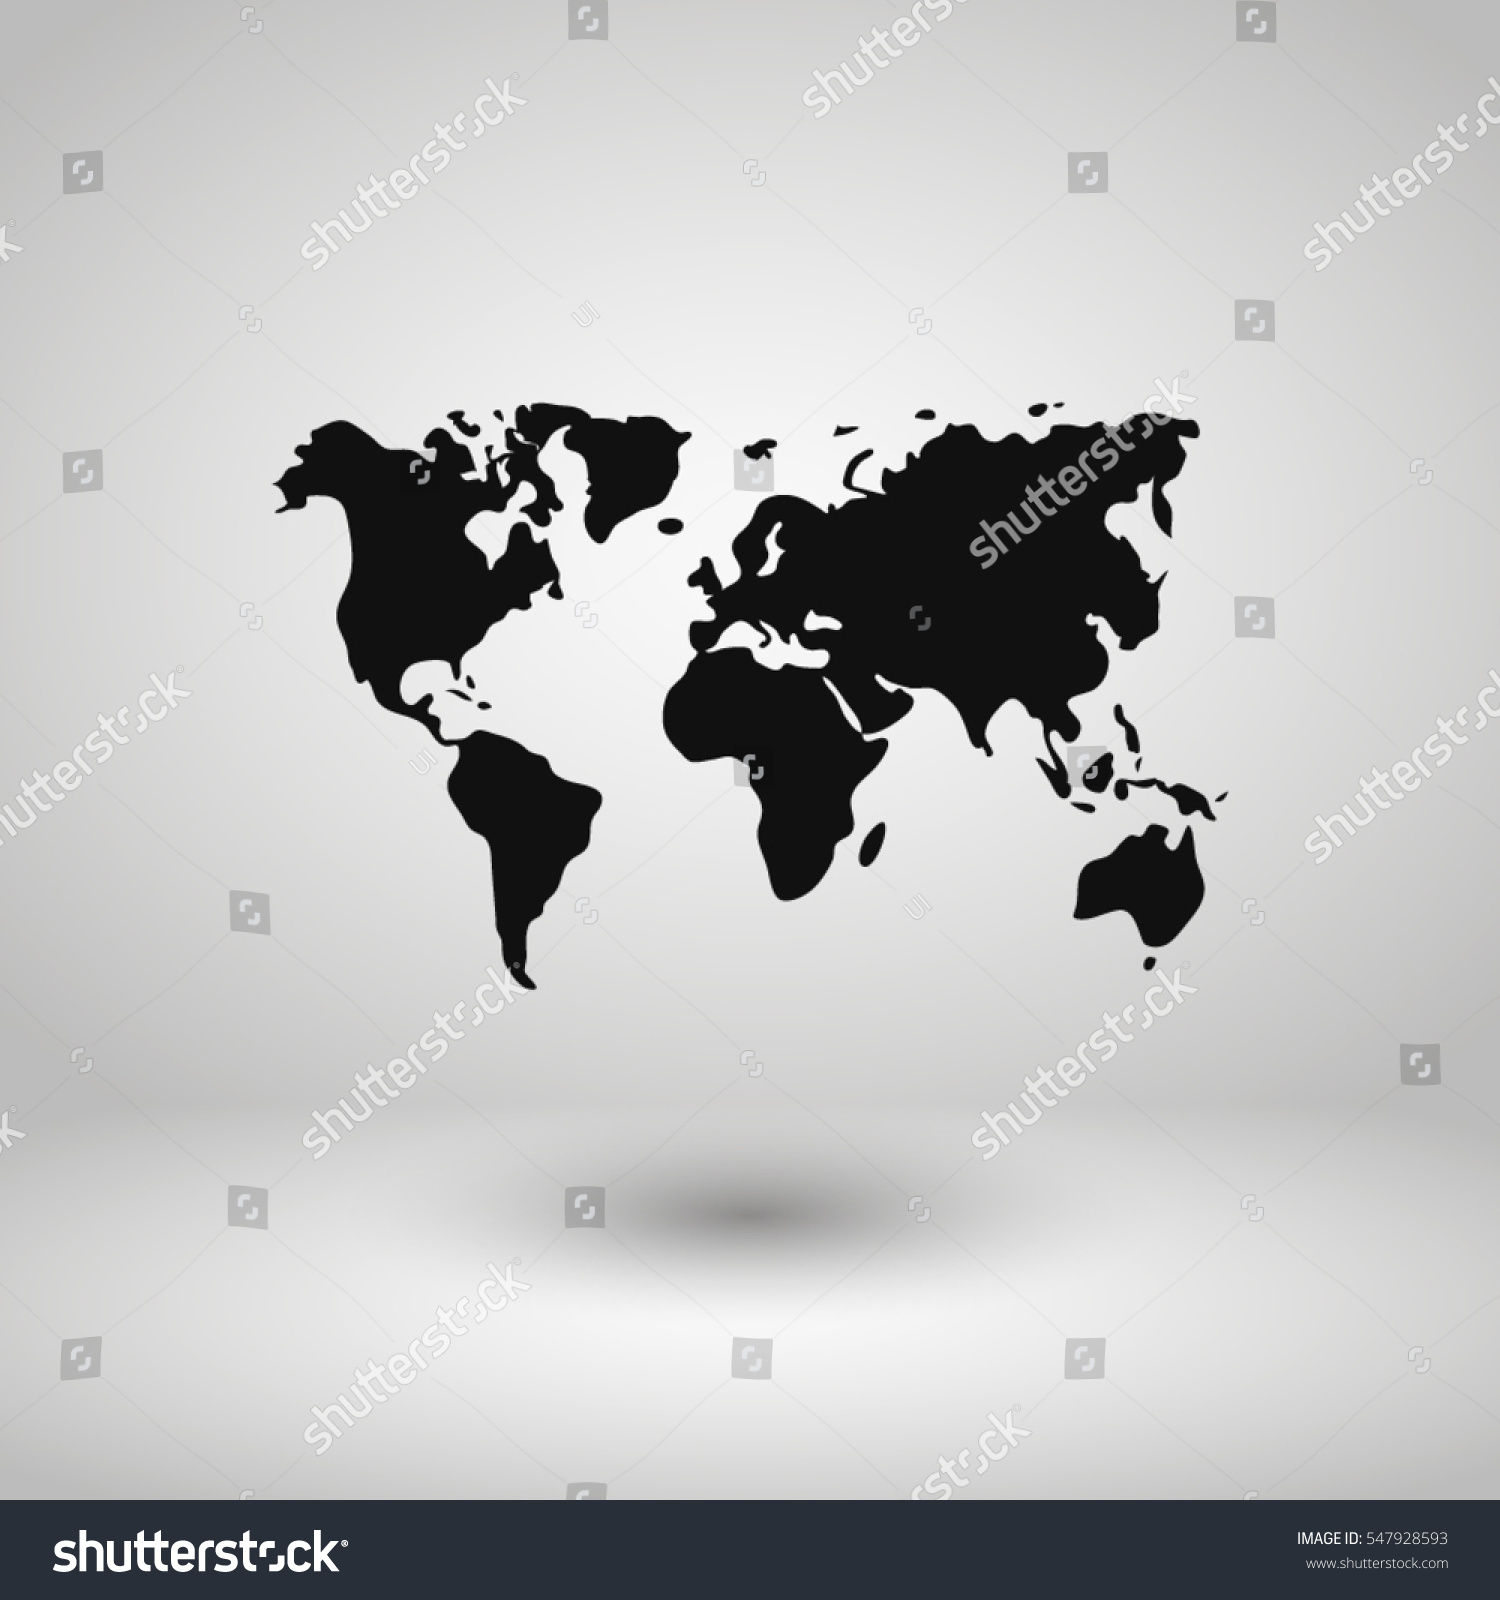 World map illustration vector vectores en stock 547928593 shutterstock world map illustration vector gumiabroncs